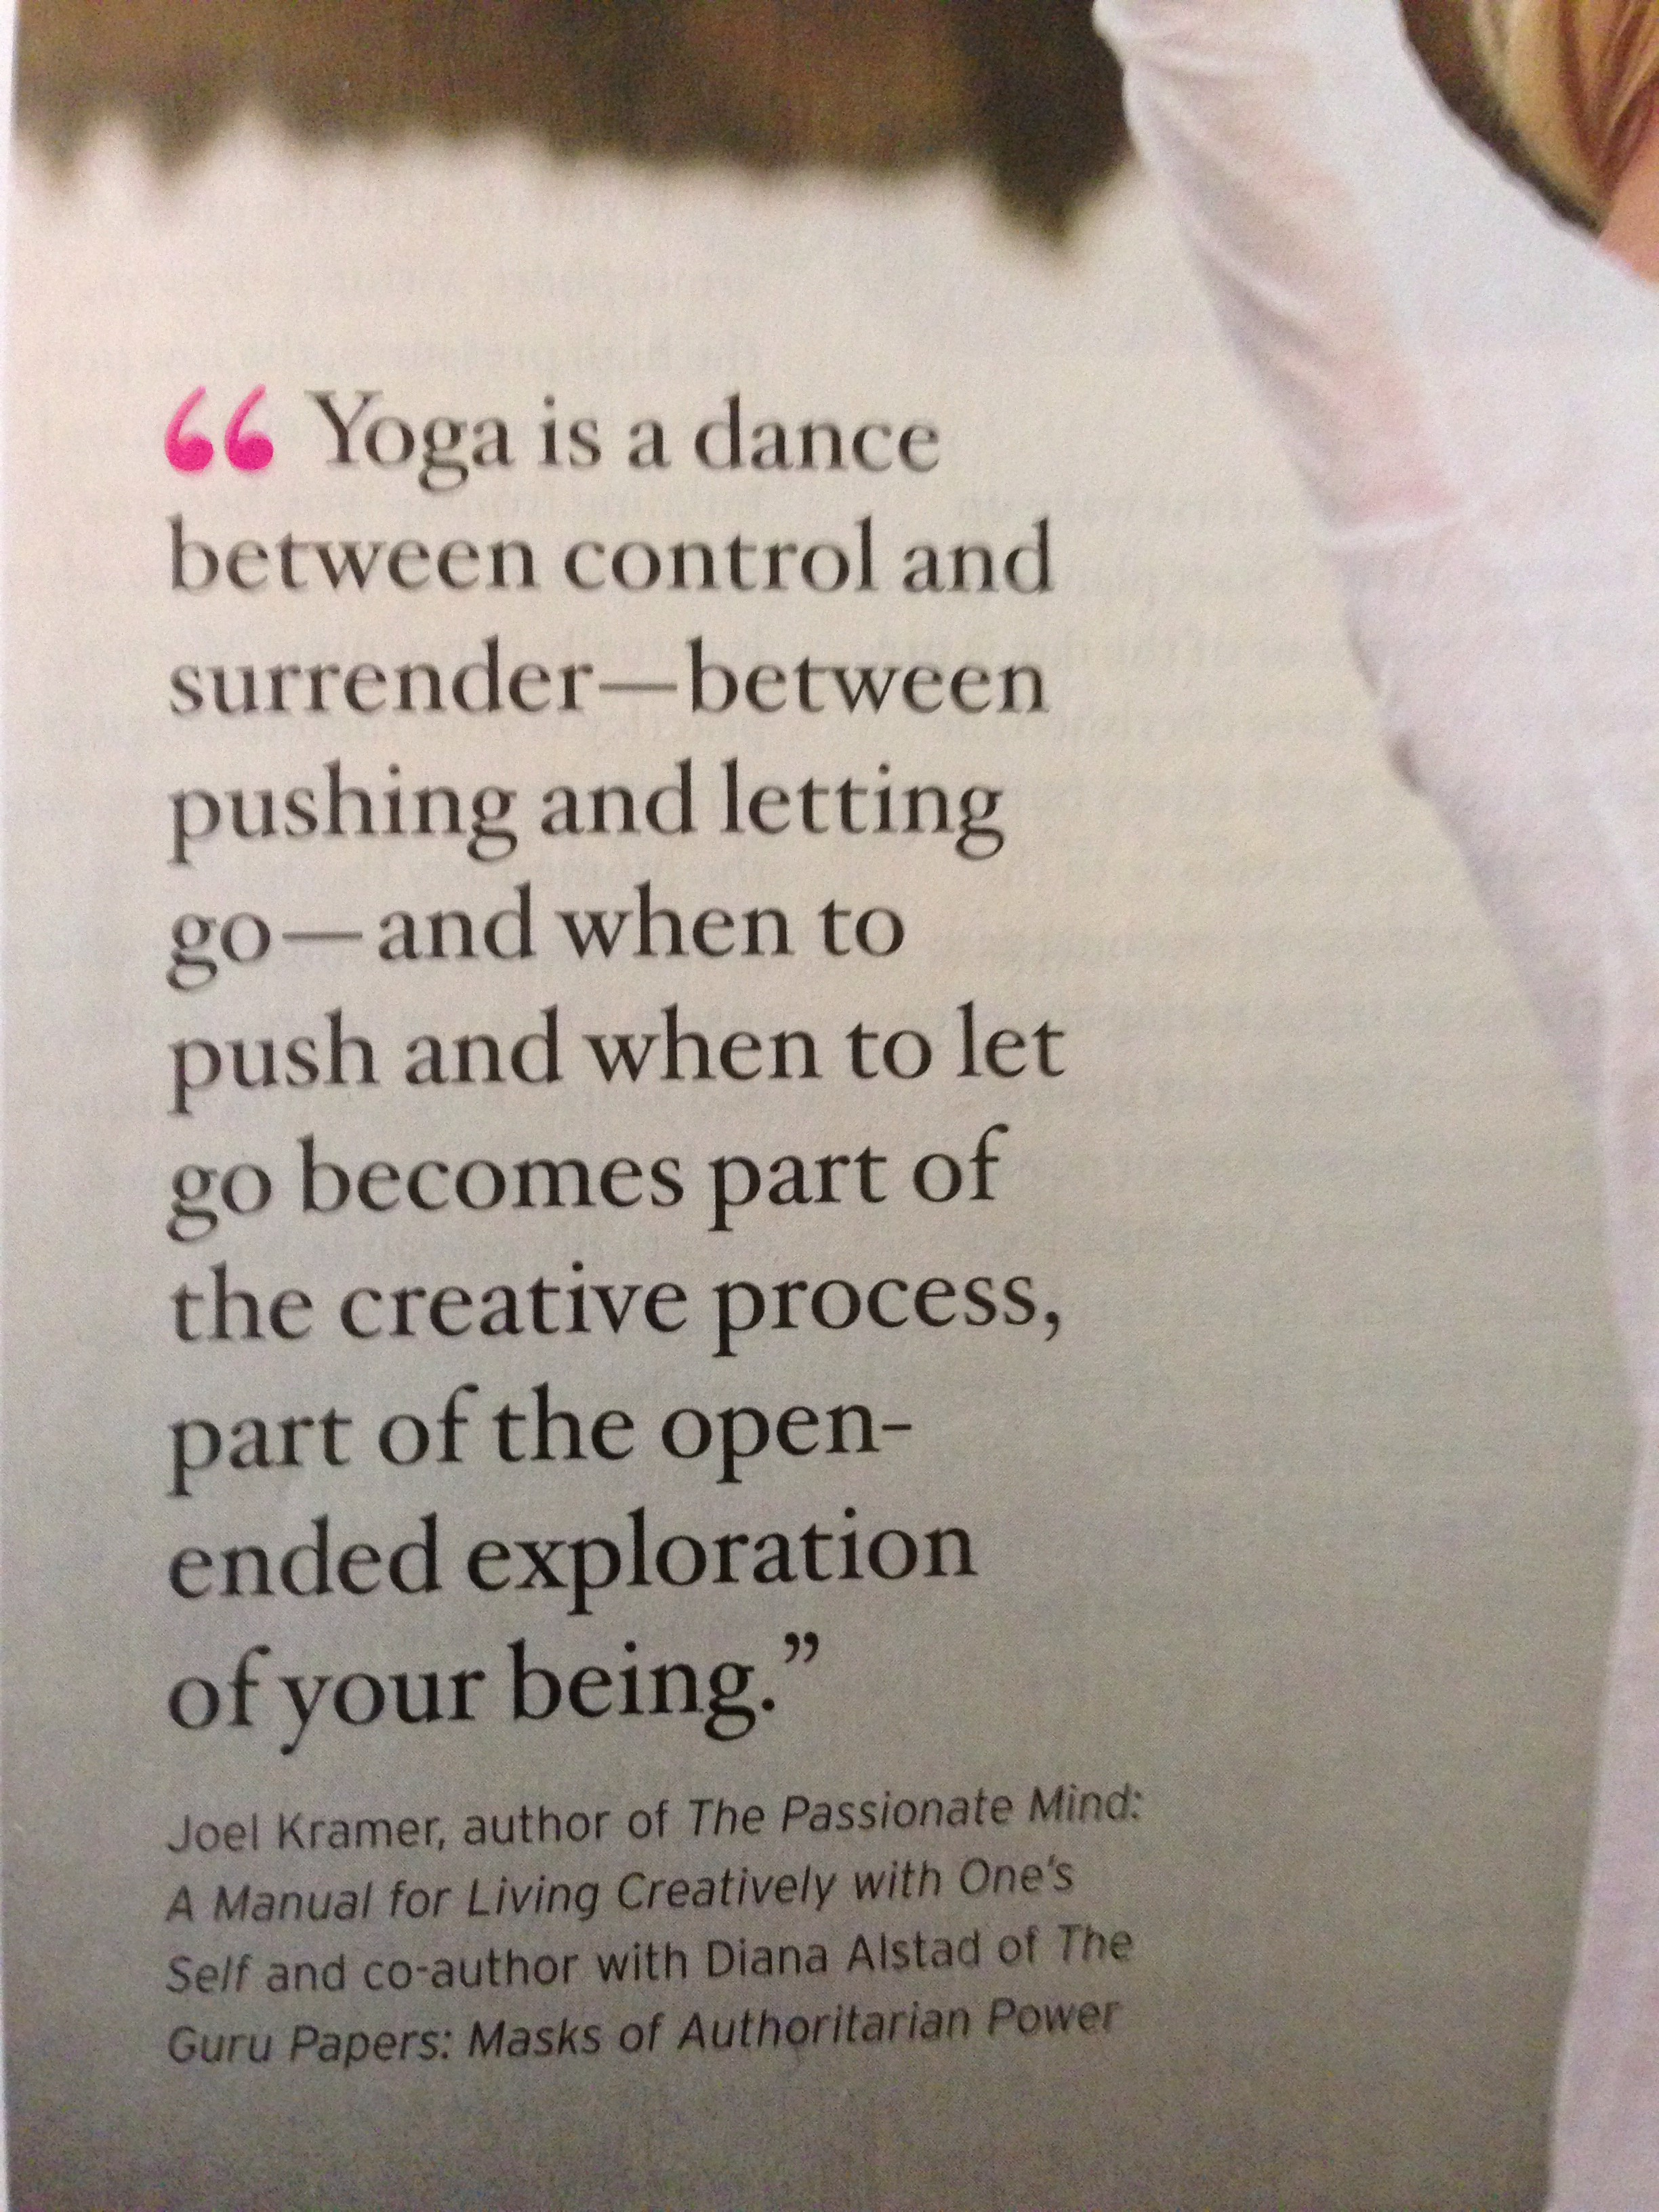 yoga quotes about balance - photo #15